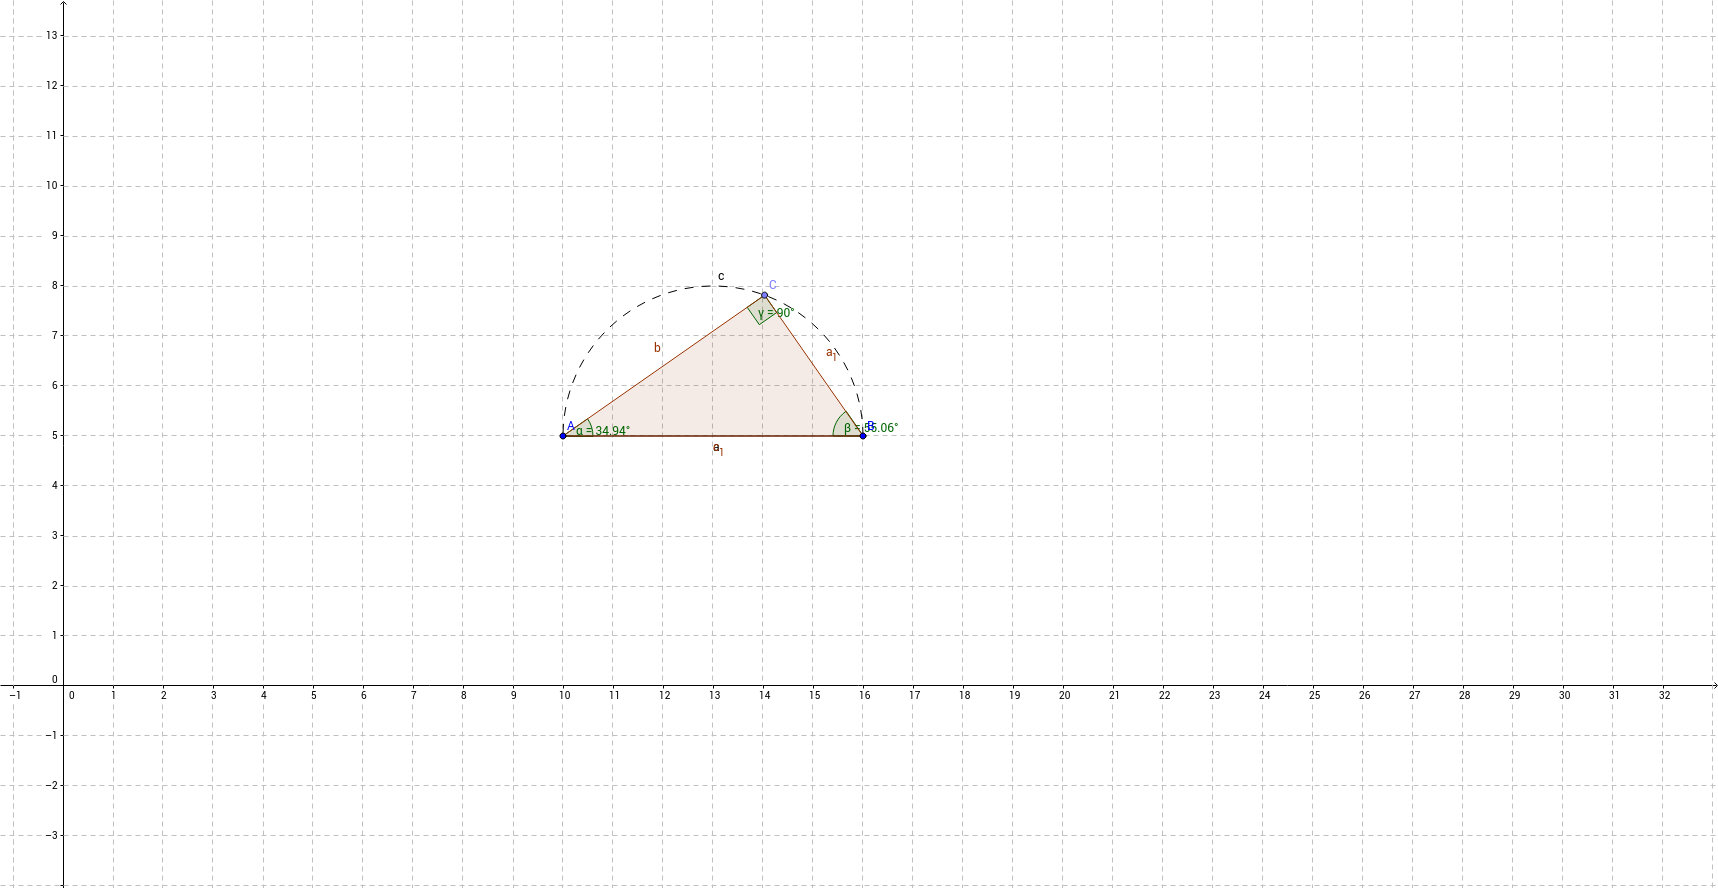 Task 7: Visualize the Theorem of Thales